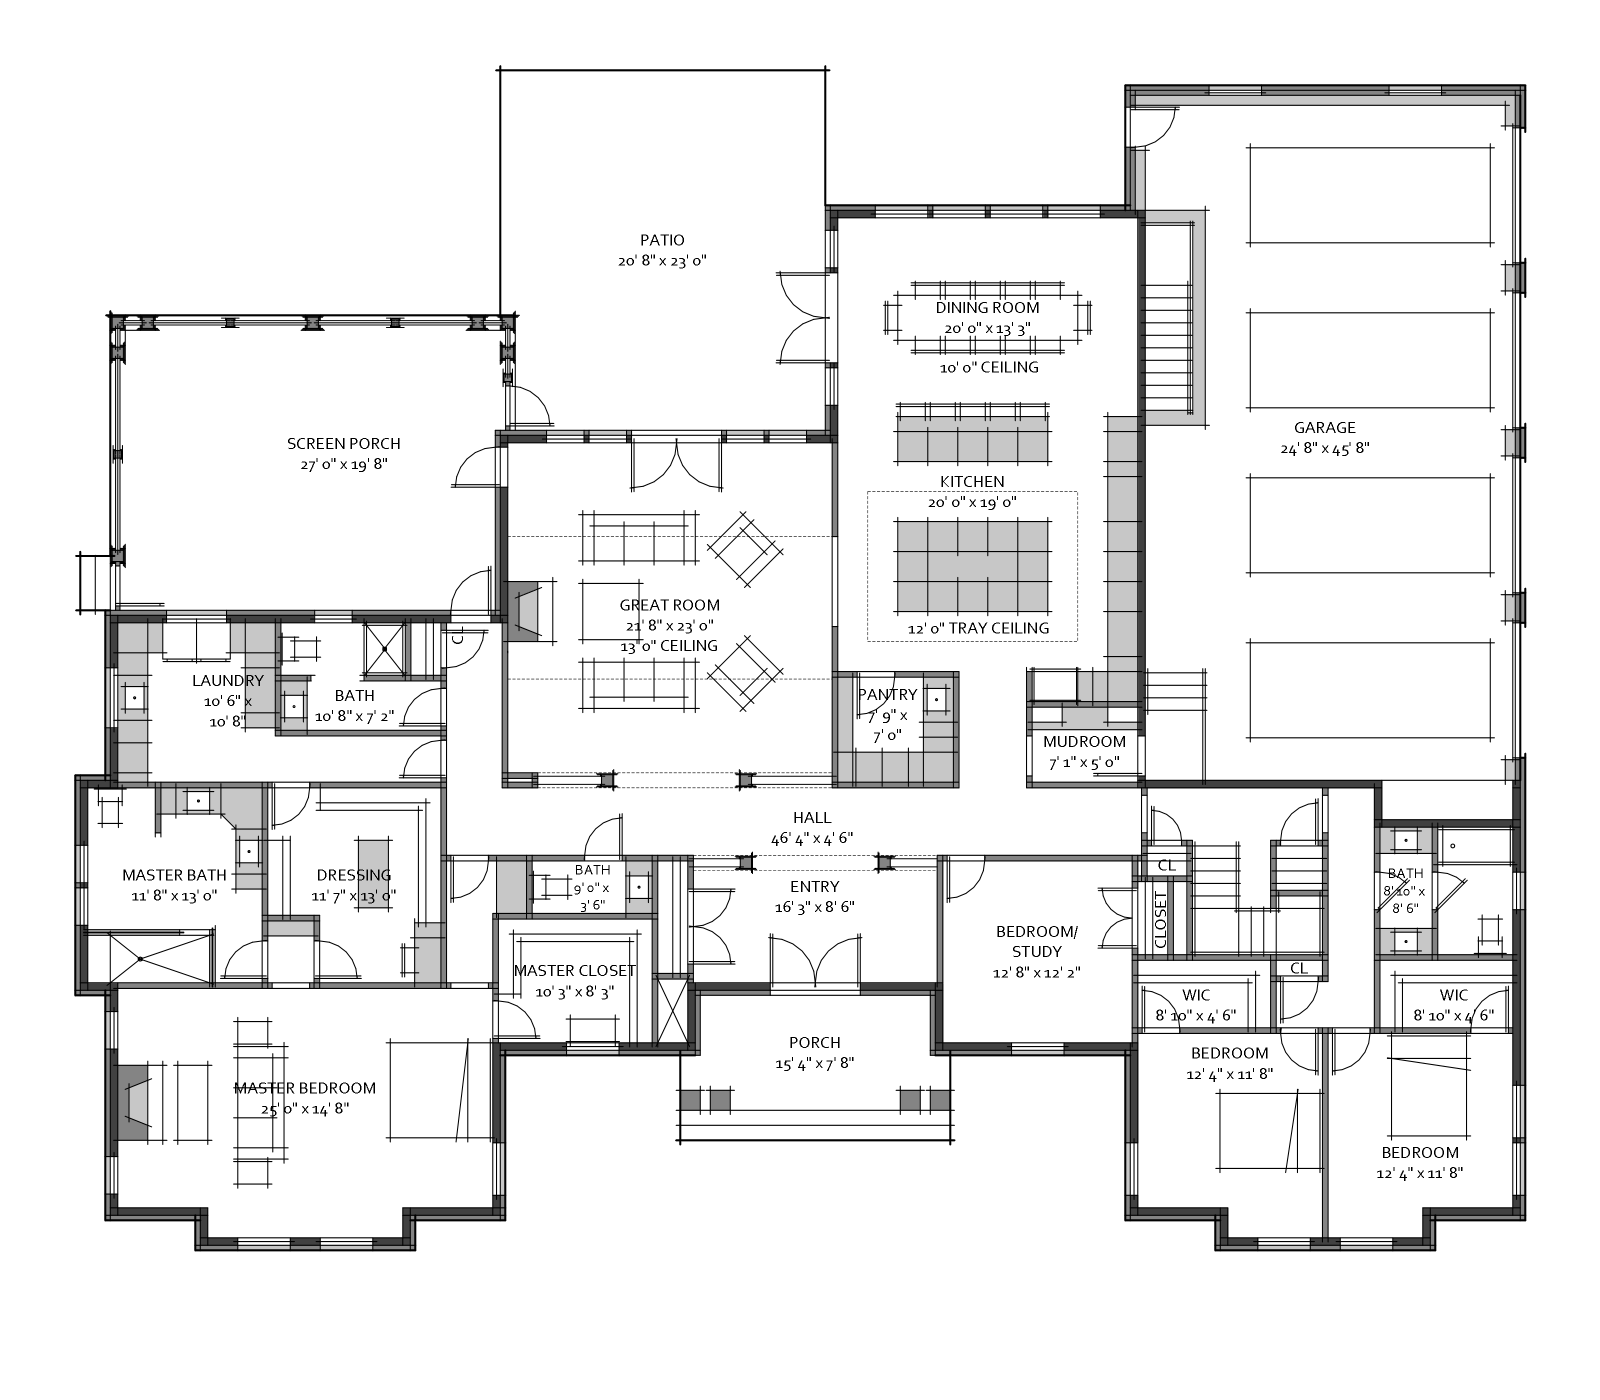 Best of sunroom floor plans house floor ideas for House plans with sunroom